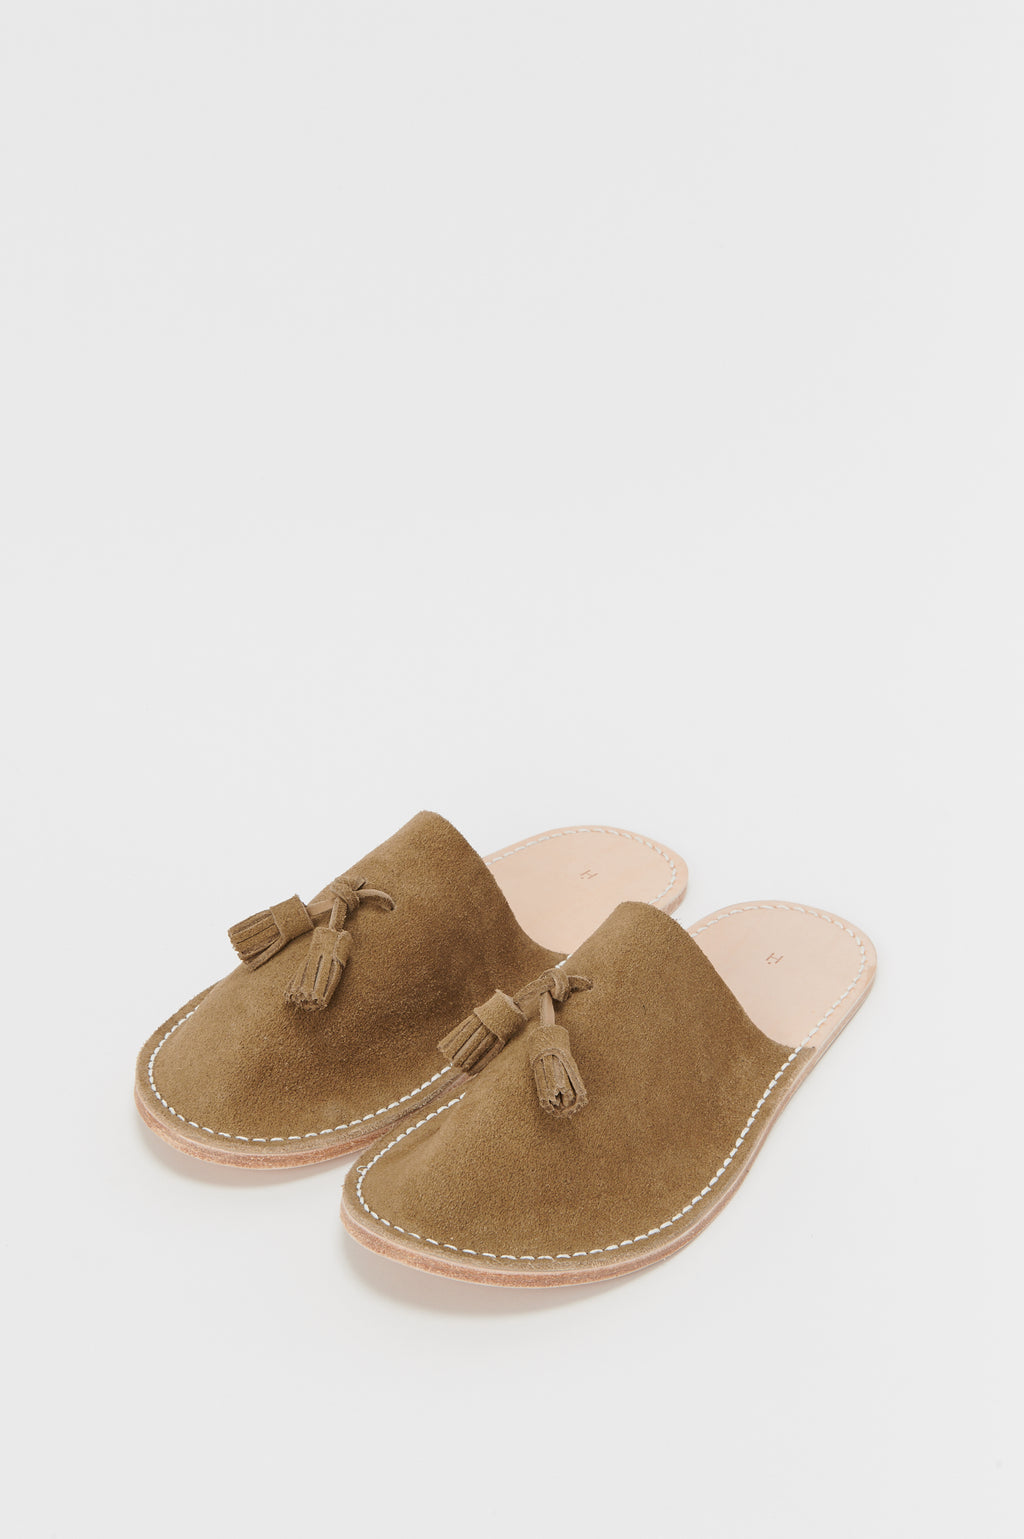 Coming Soon: Leather Slipper in Khaki Beige